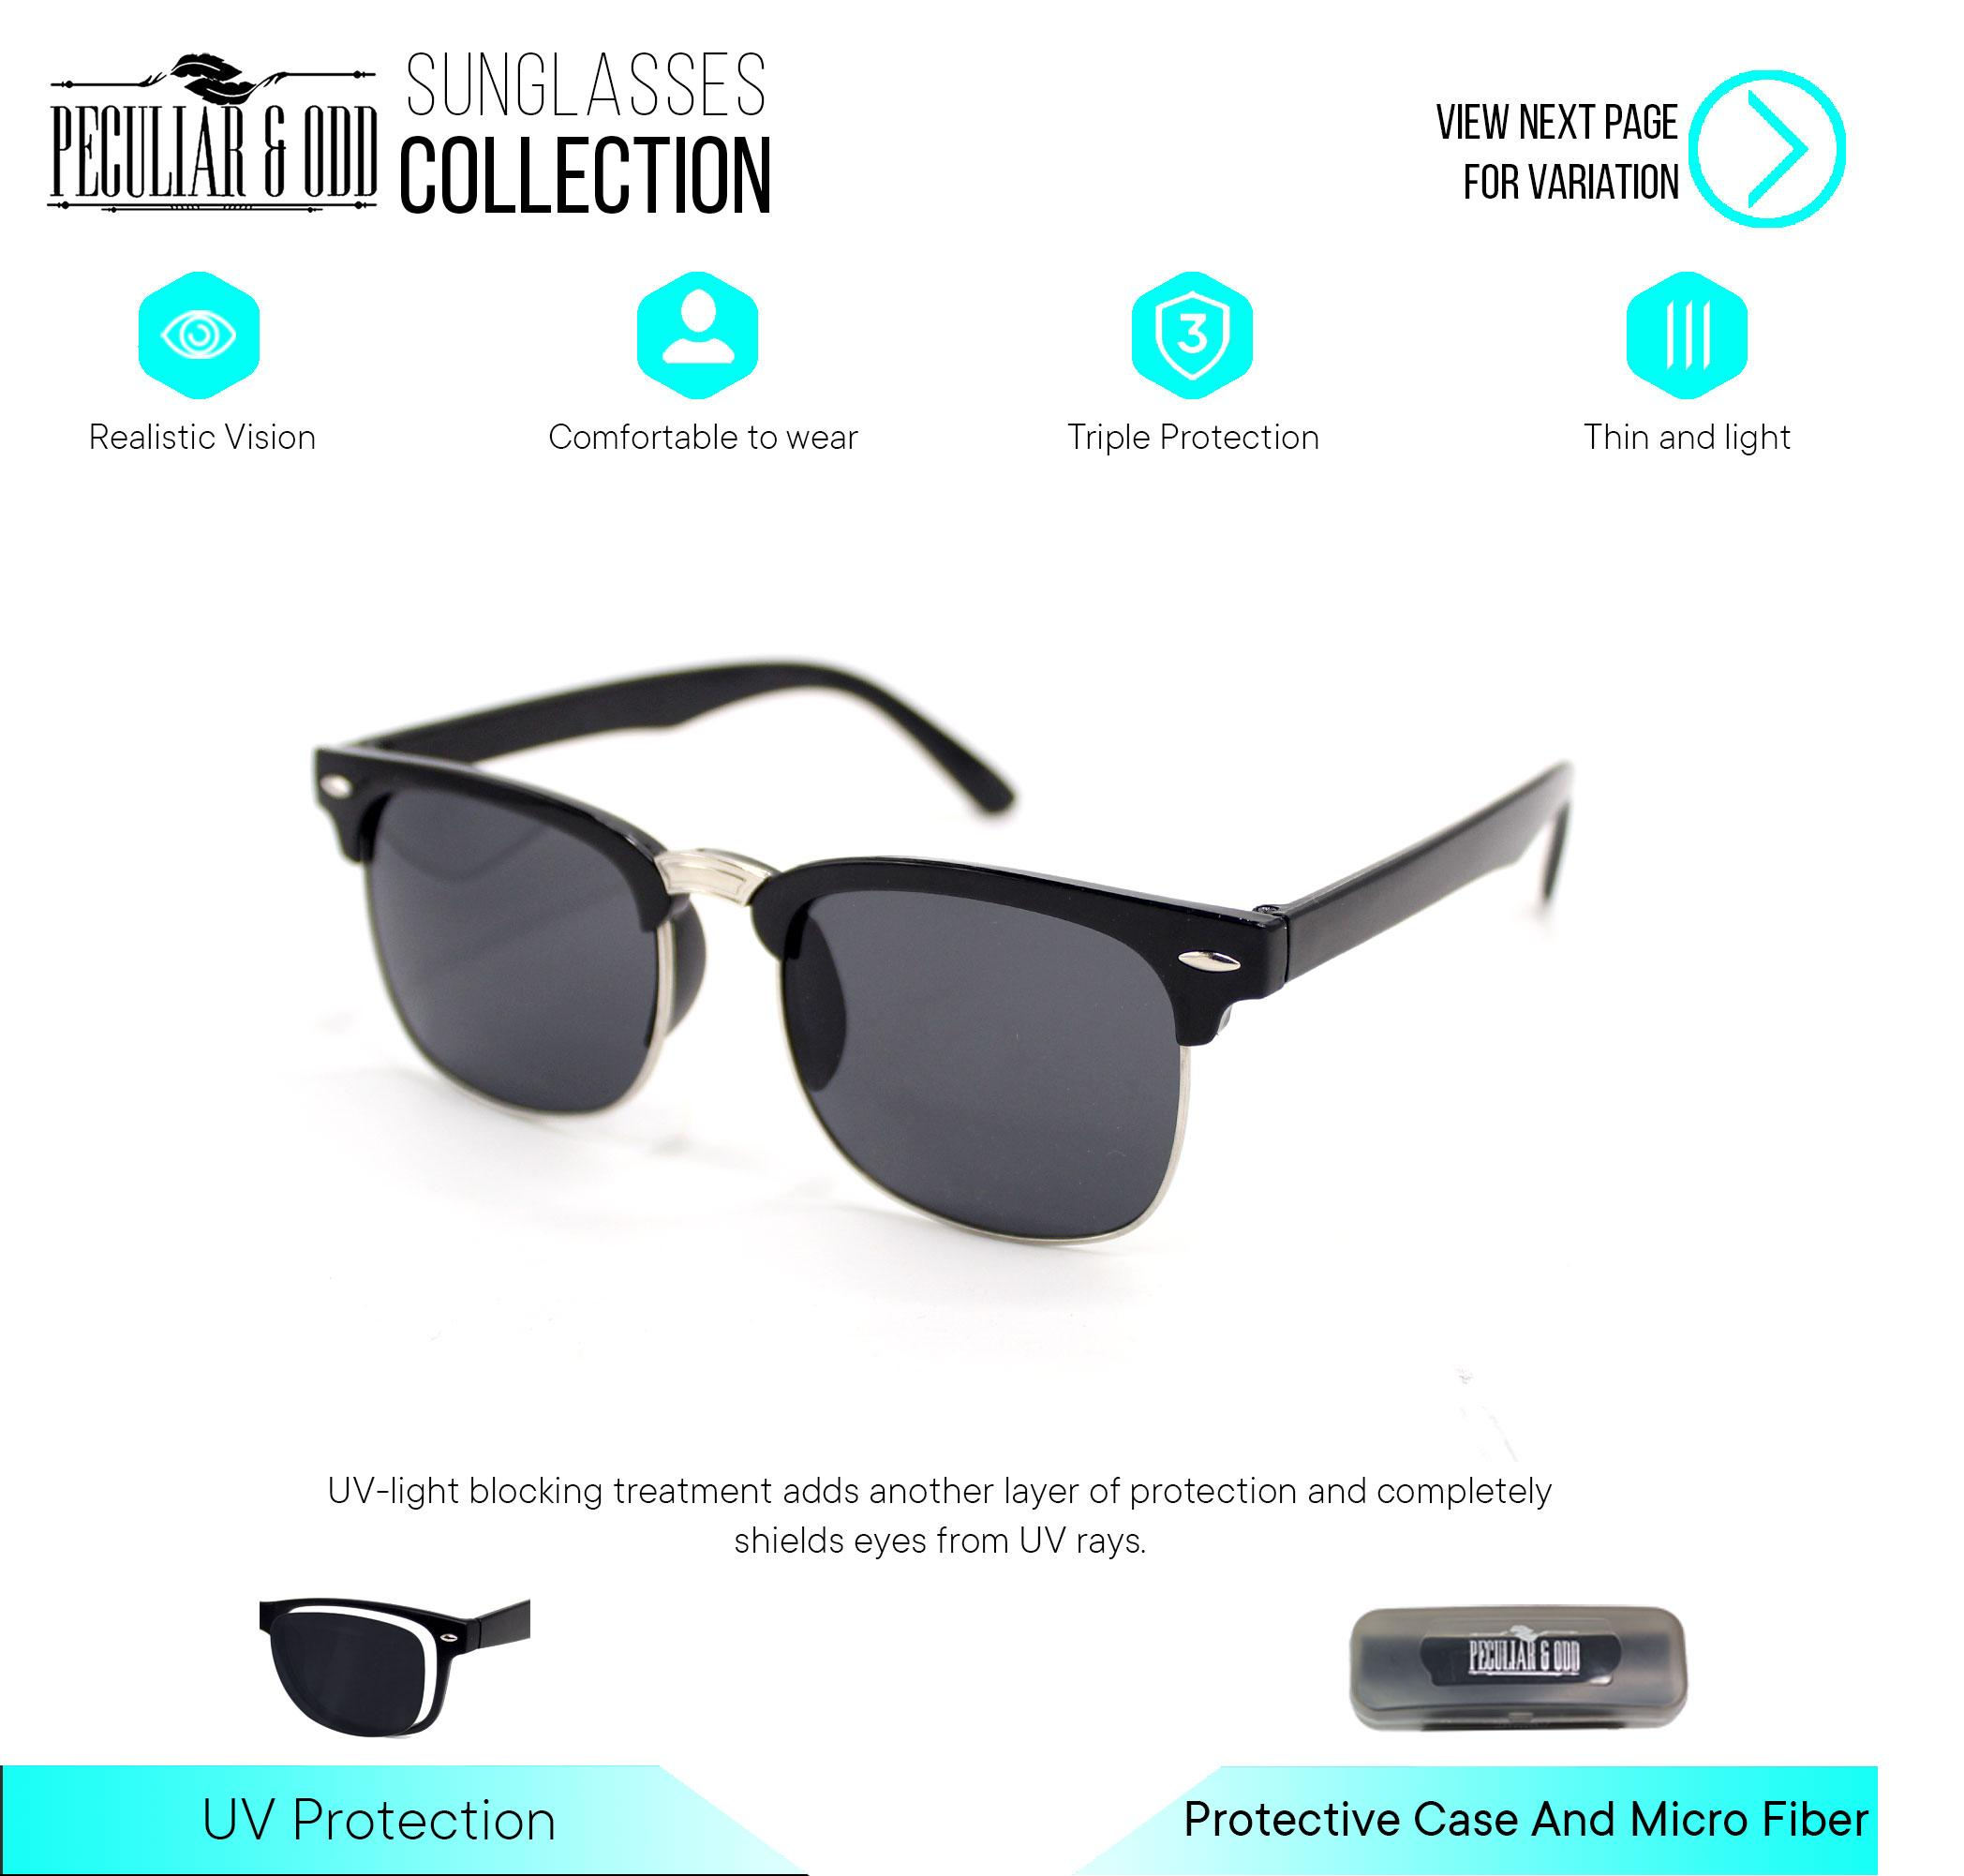 Peculiar Clubmaster Classic Sunglasses 3398 With Black Lens In Black Frame By Salimars Trading.